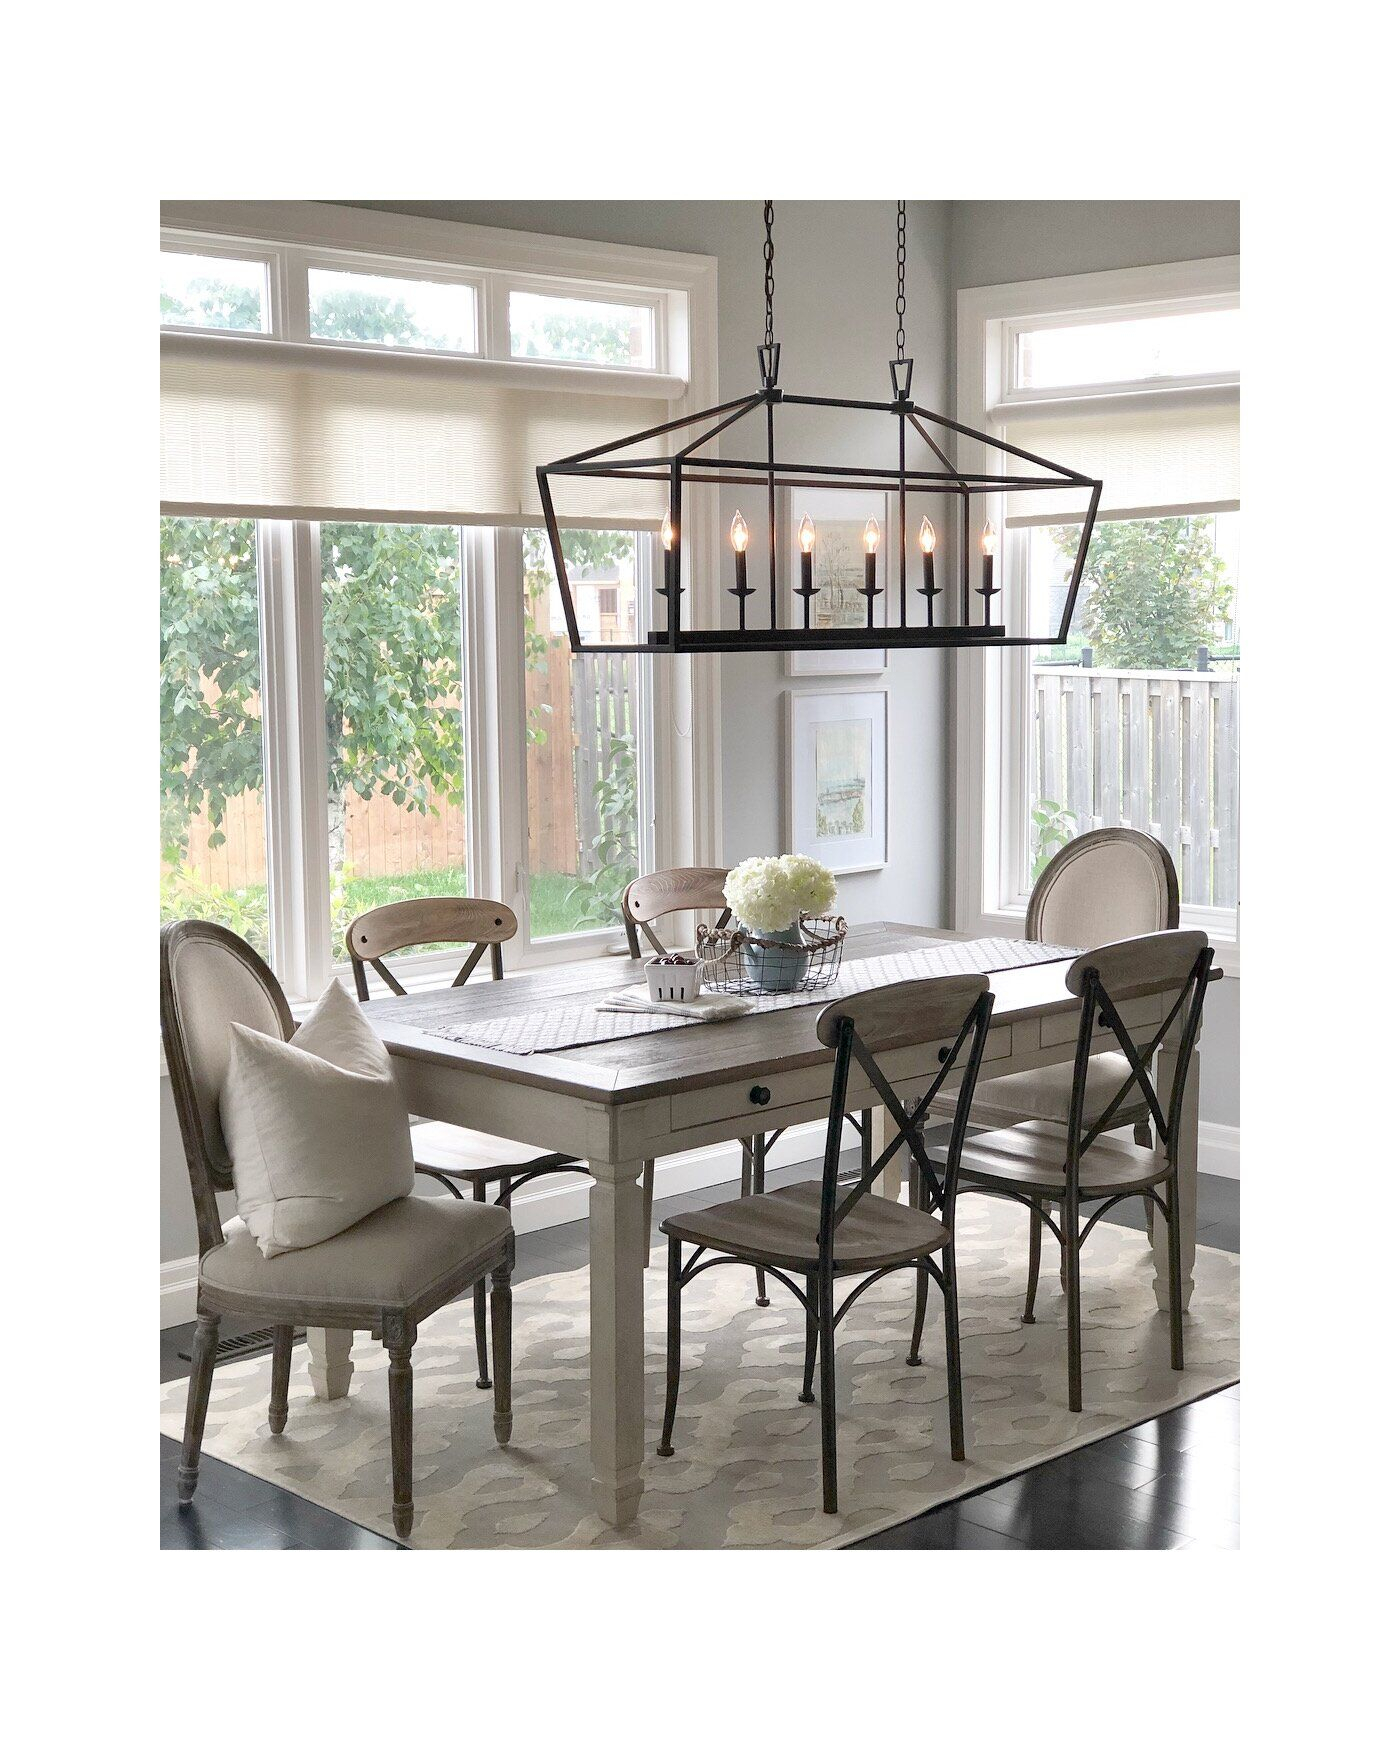 Carmen 6 Light Kitchen Island Pendant In 2019 | Dining Pertaining To Carmen 6 Light Kitchen Island Linear Pendants (View 6 of 30)